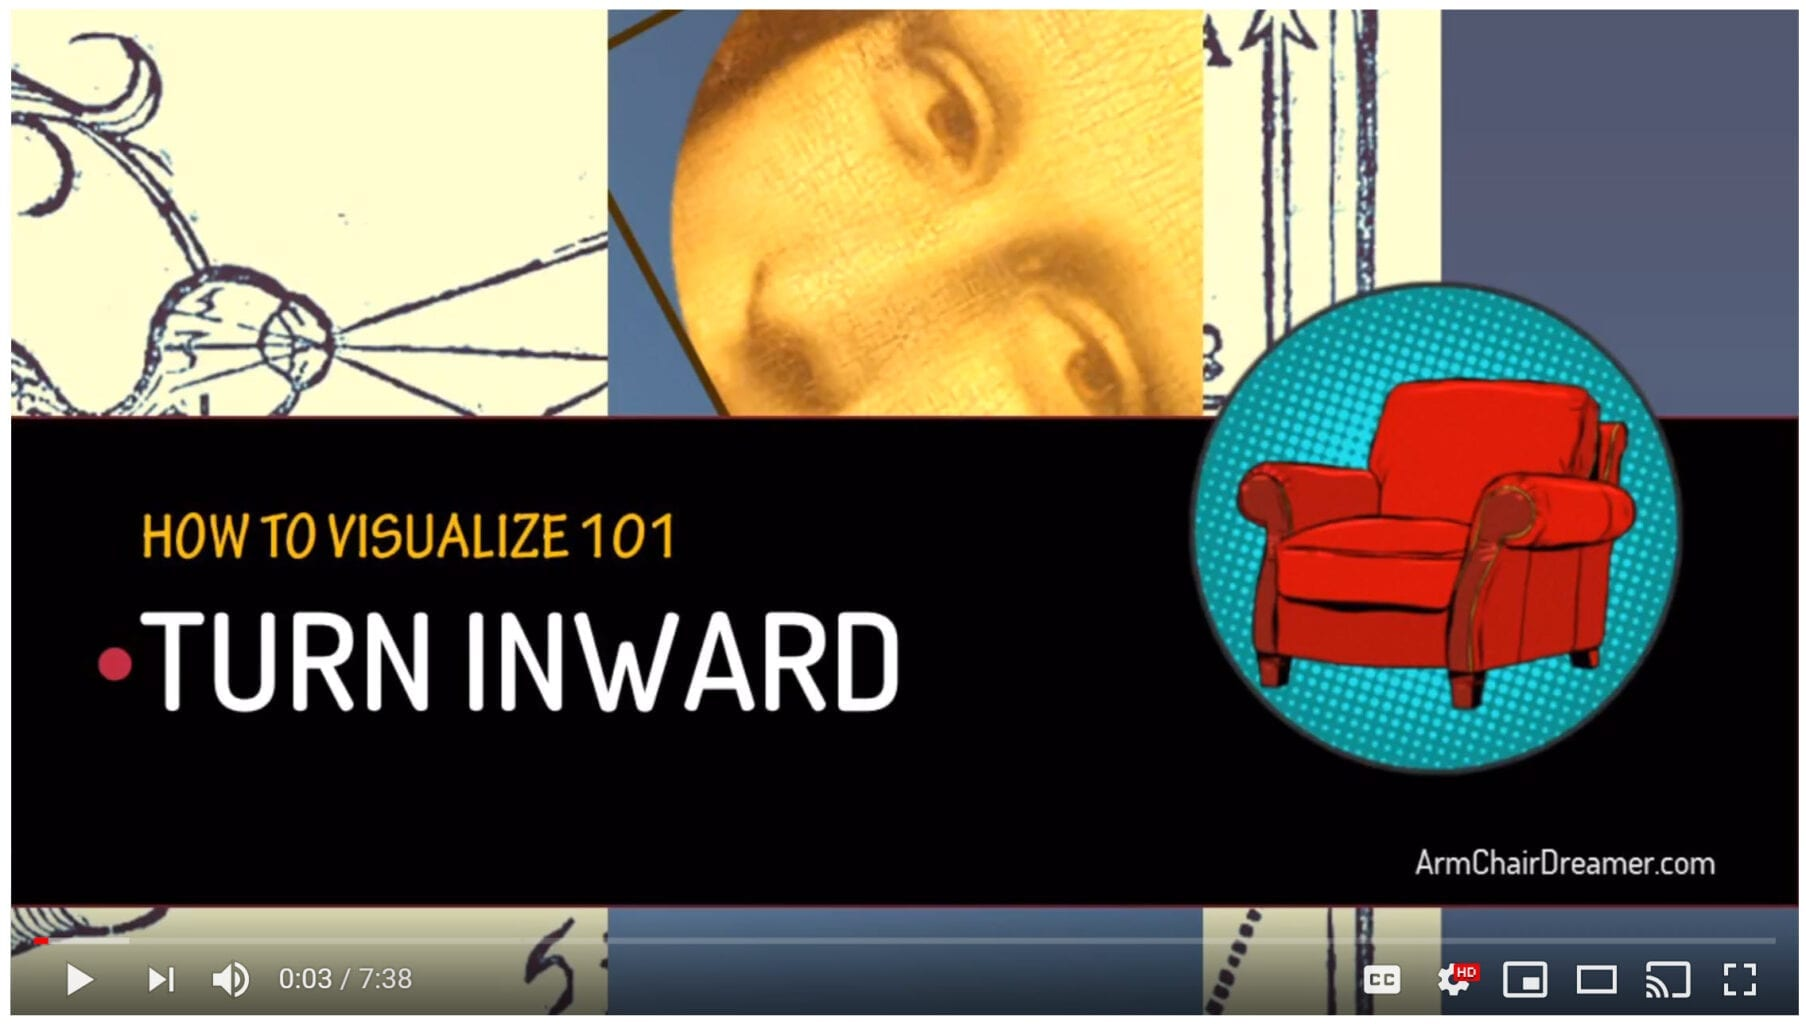 How to Visualize 101 – Step 2 -[Visualize Video]